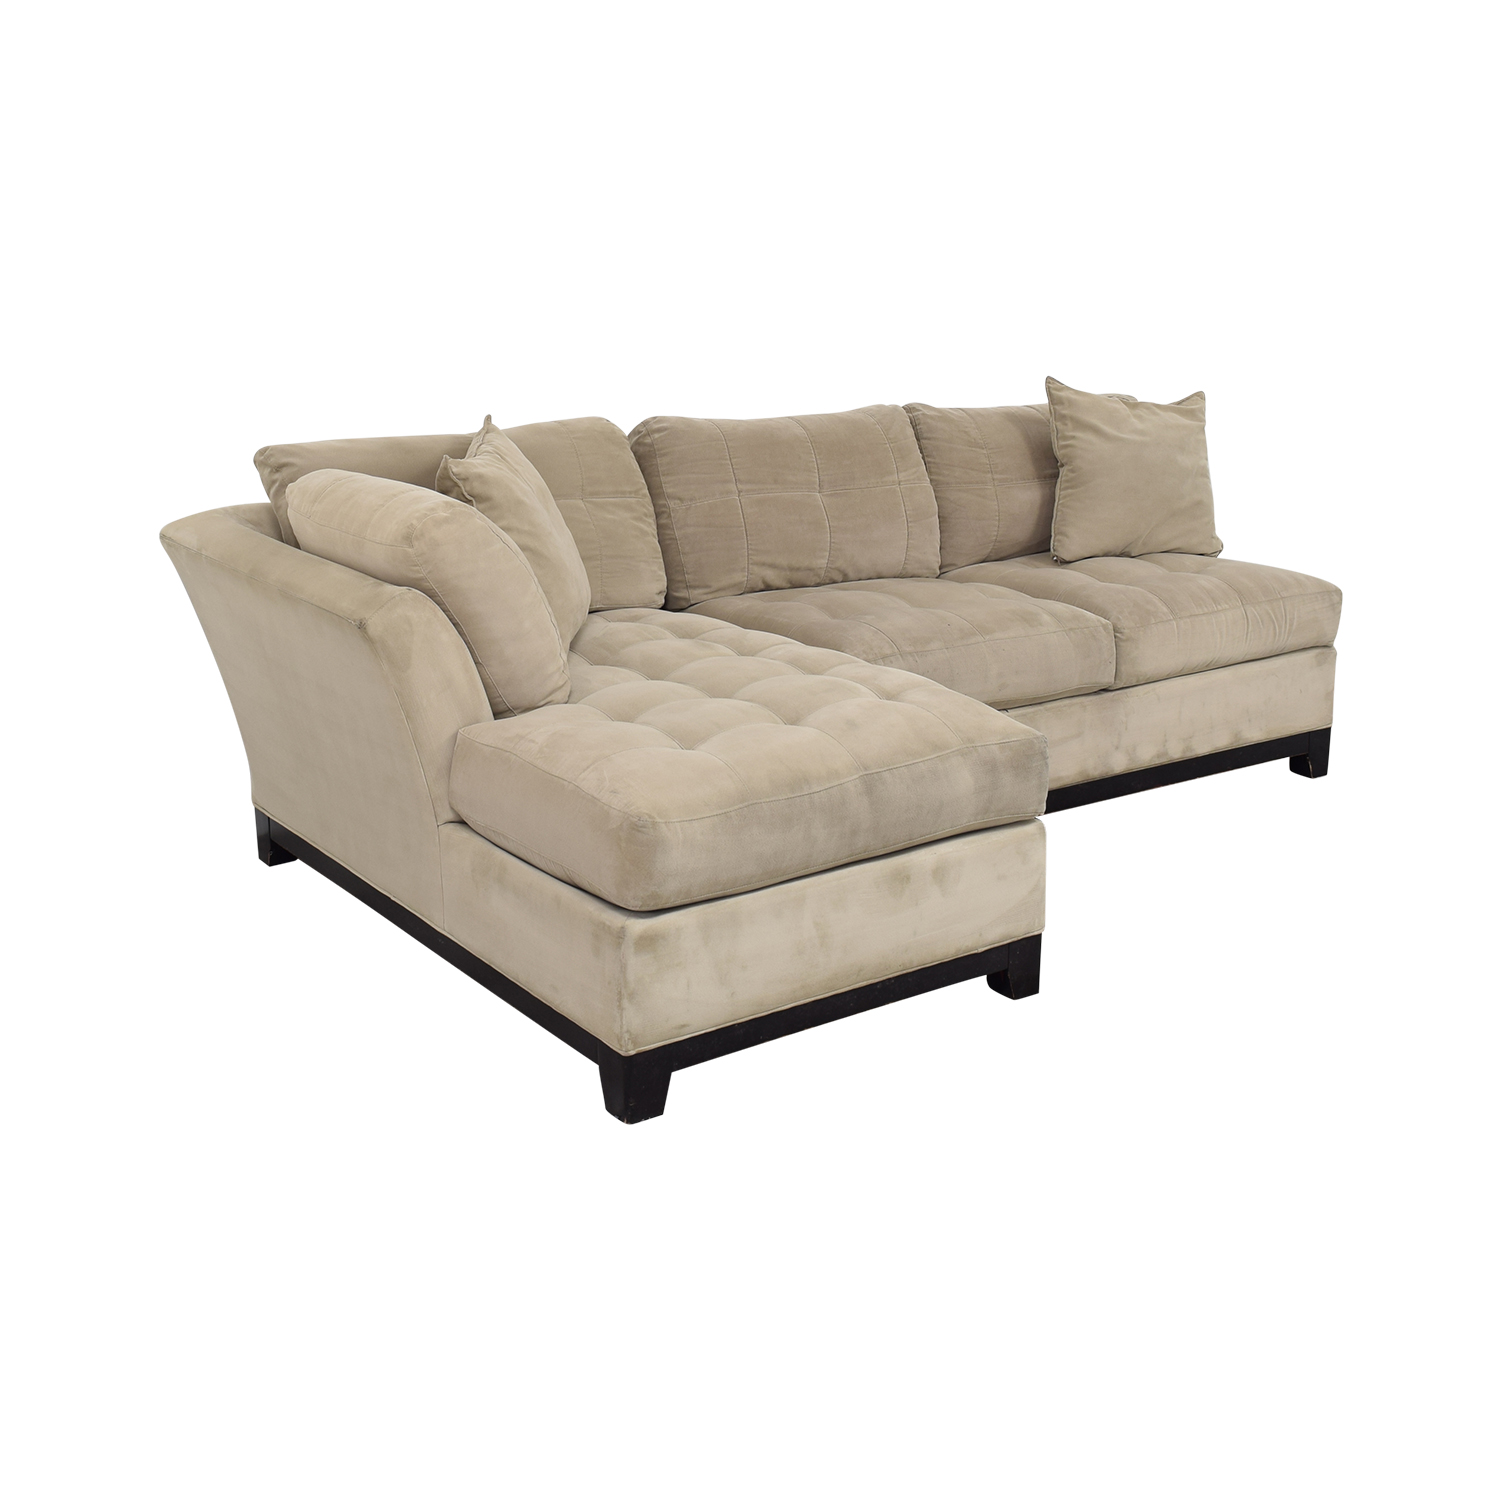 buy Cindy Crawford Home Microfiber Sectional with Ottoman Cindy Crawford Home Sofas